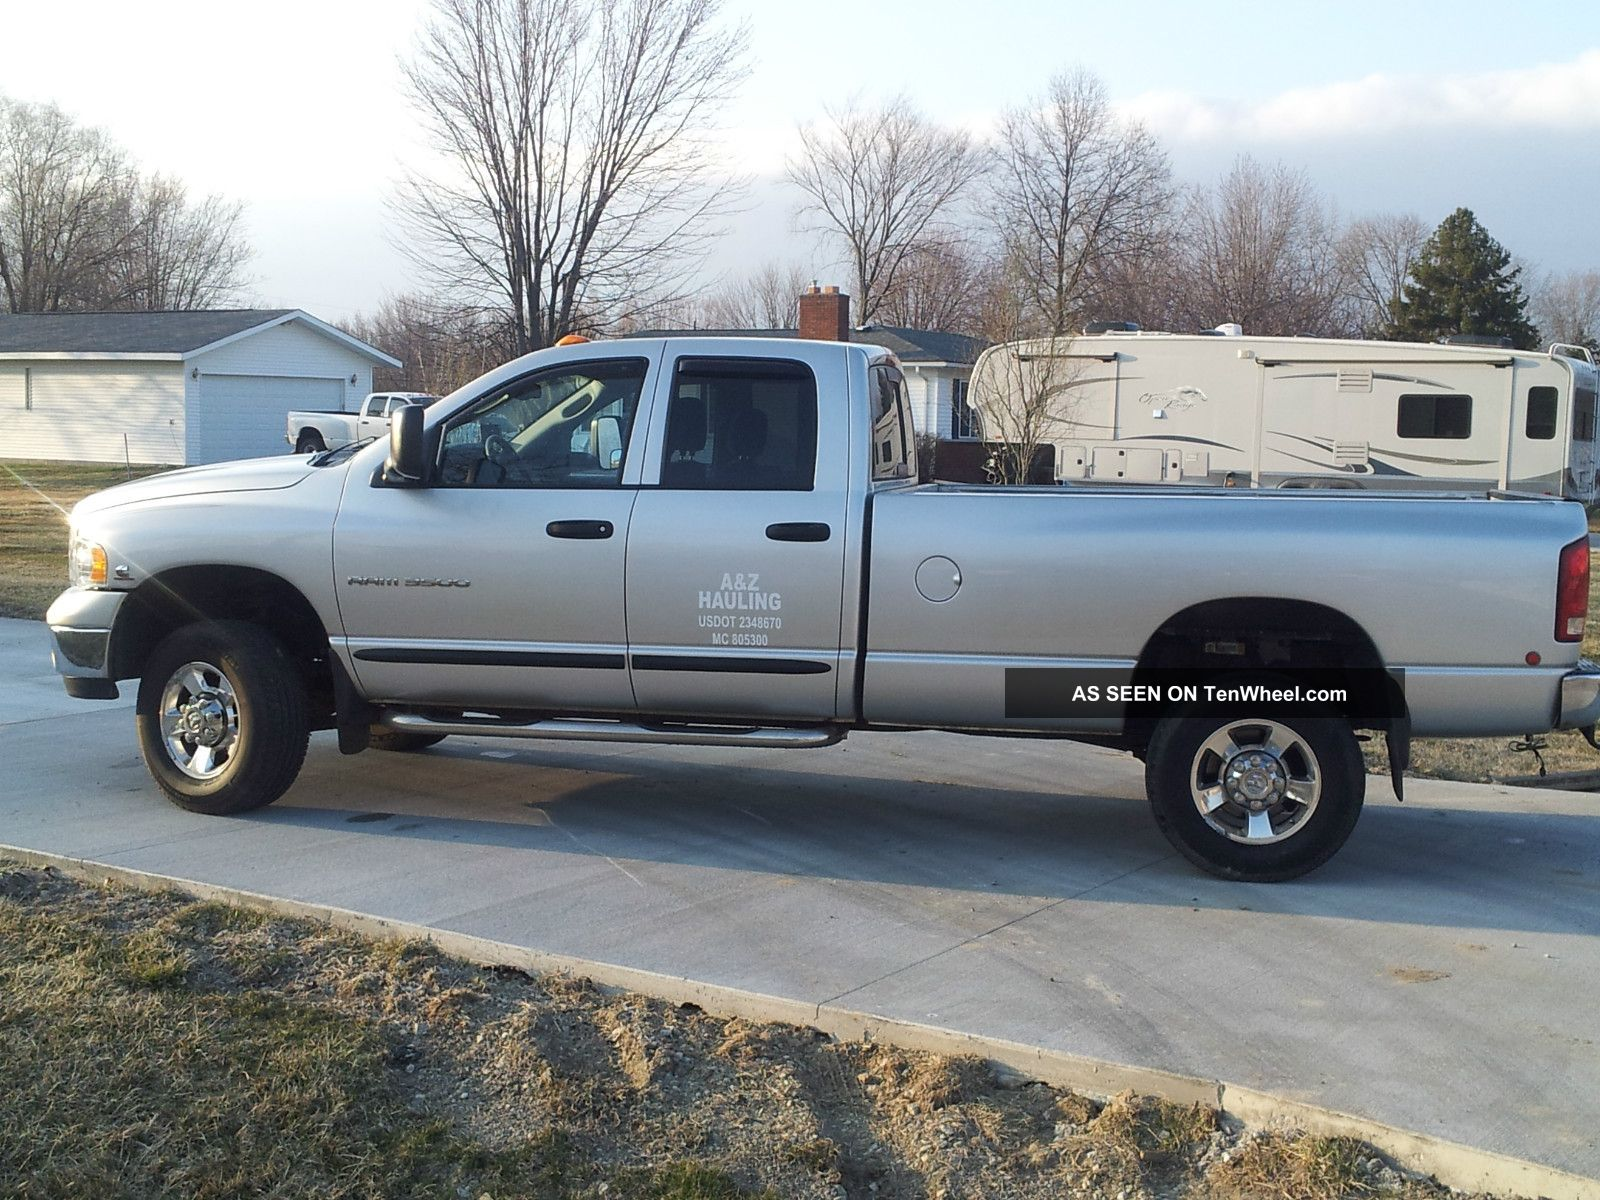 2005 dodge ram 3500 slt crew cab pickup 4 door 5 9l. Black Bedroom Furniture Sets. Home Design Ideas